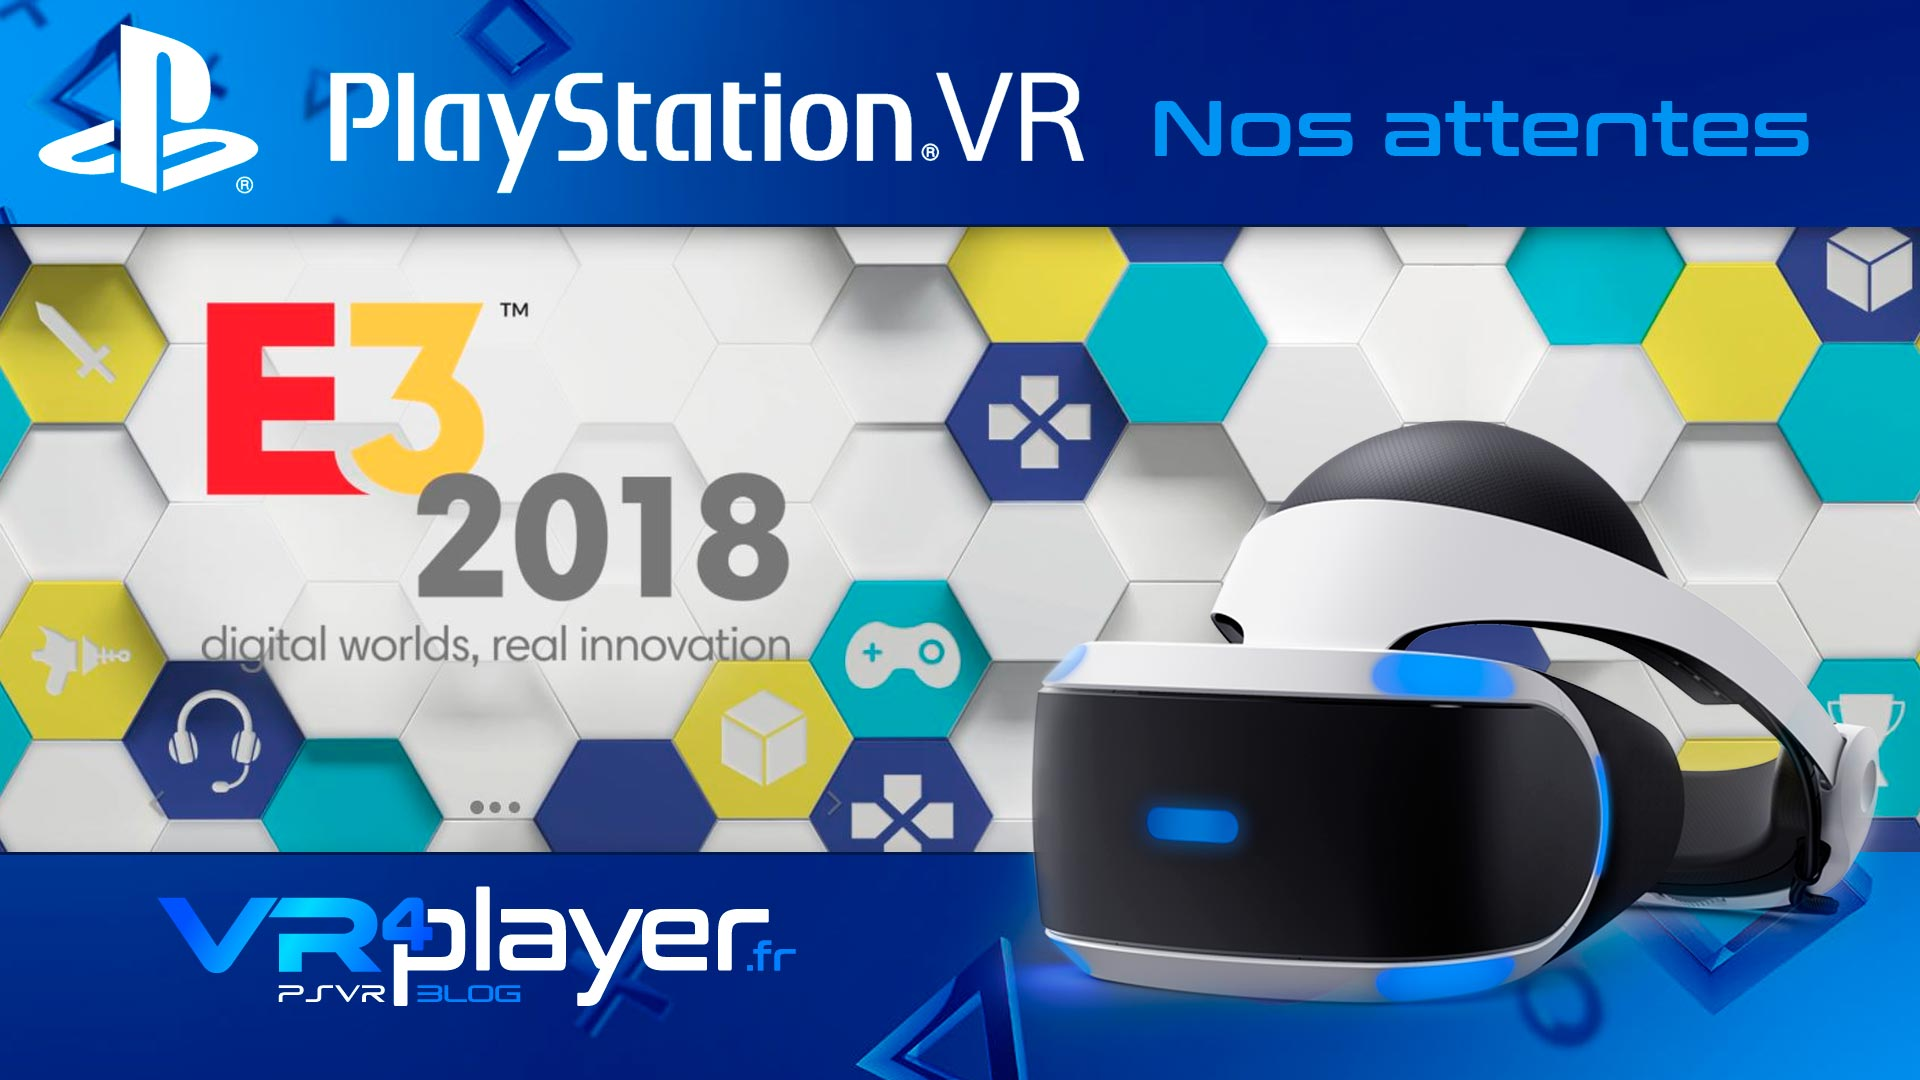 E3 2018 PlayStation VR : Nos attentes VR4player.fr